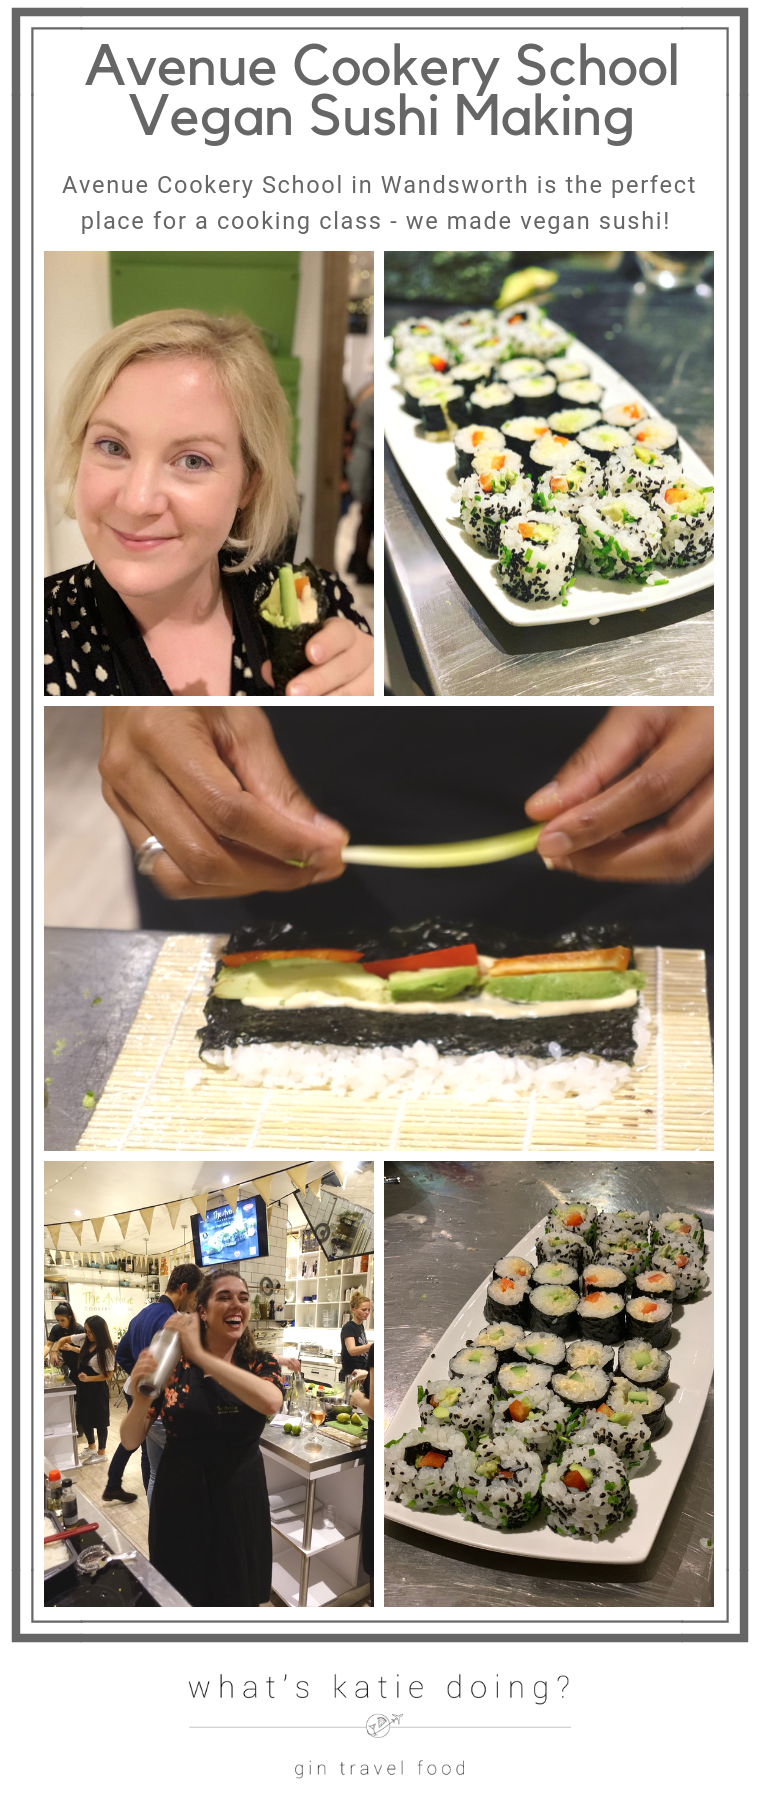 Vegan Sushi making at Avenue Cookery School in Wandsworth, London